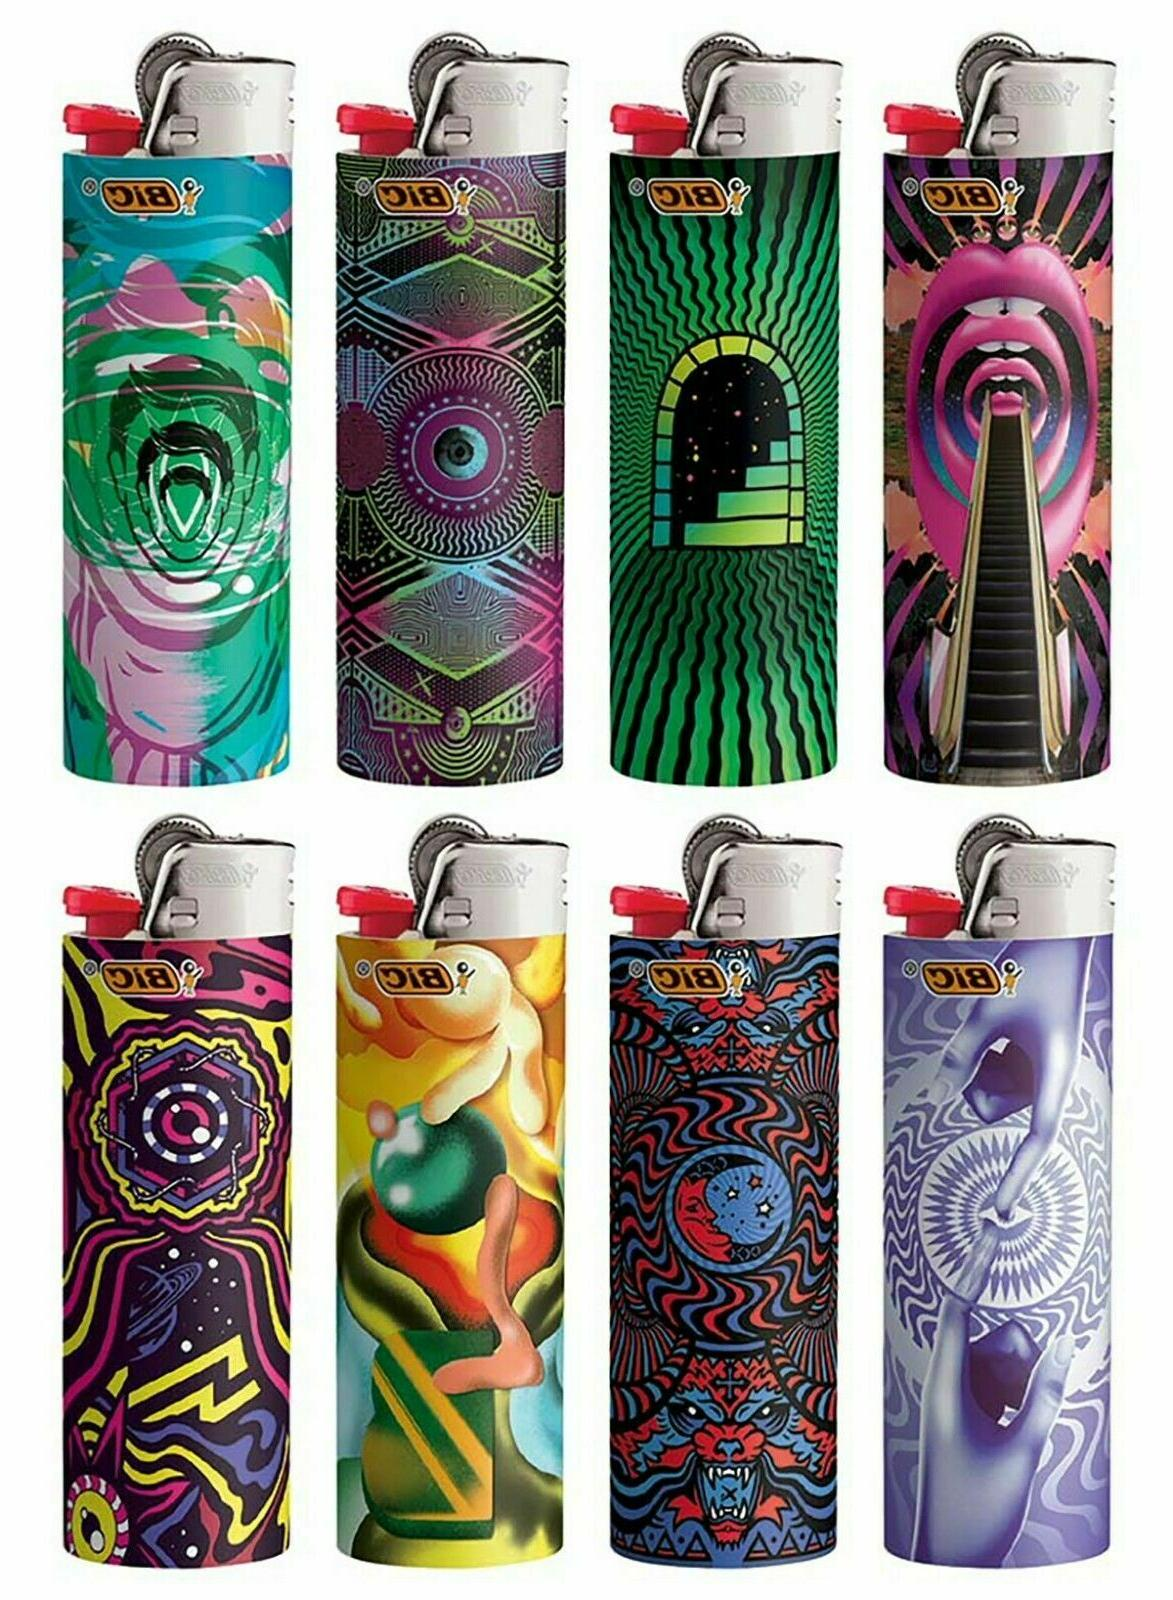 8 lighters prismatic swirling patterns